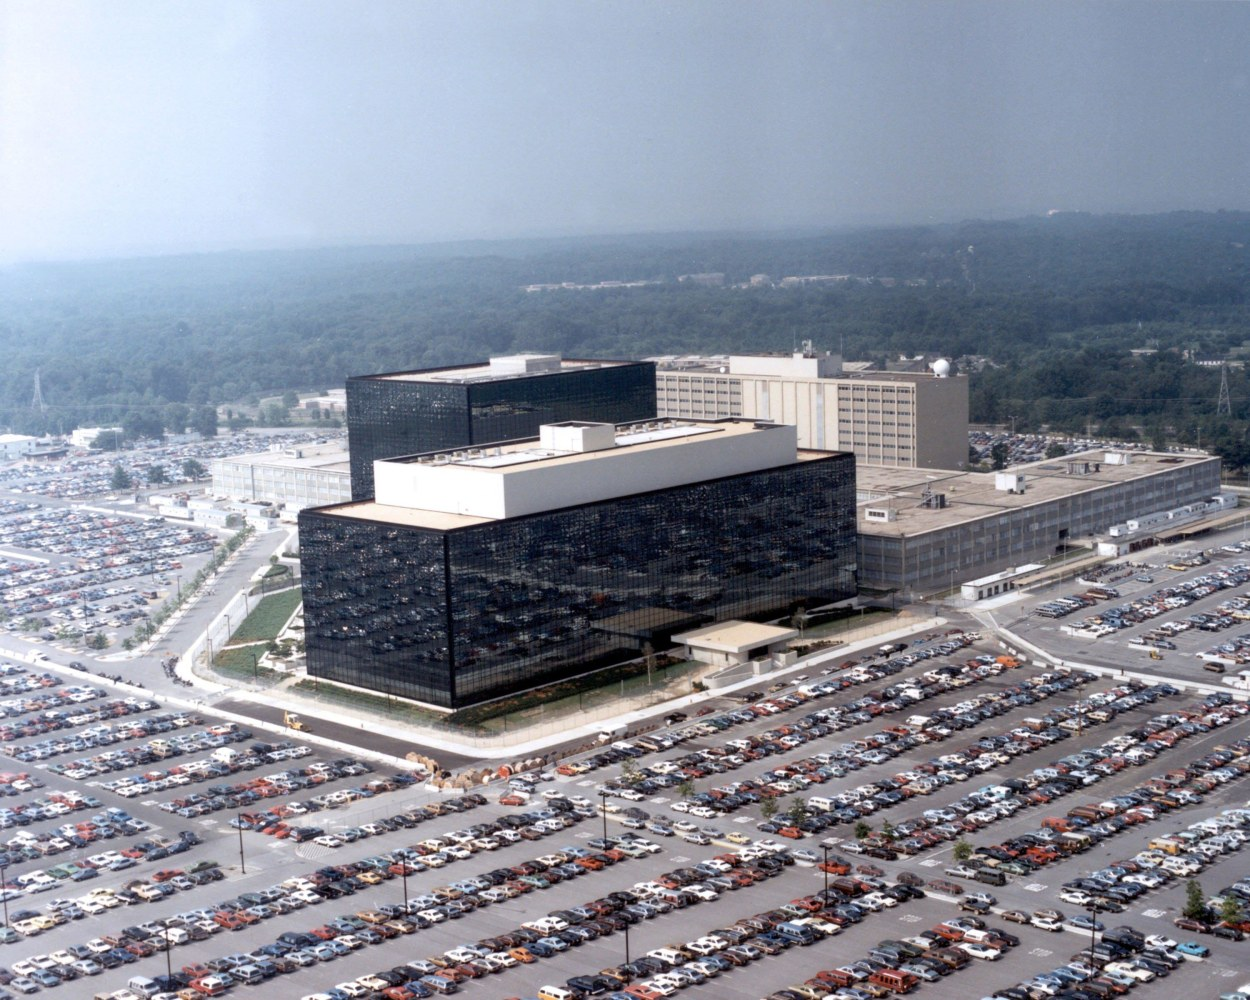 NSA Worker Charged With Stealing Top Secret Files